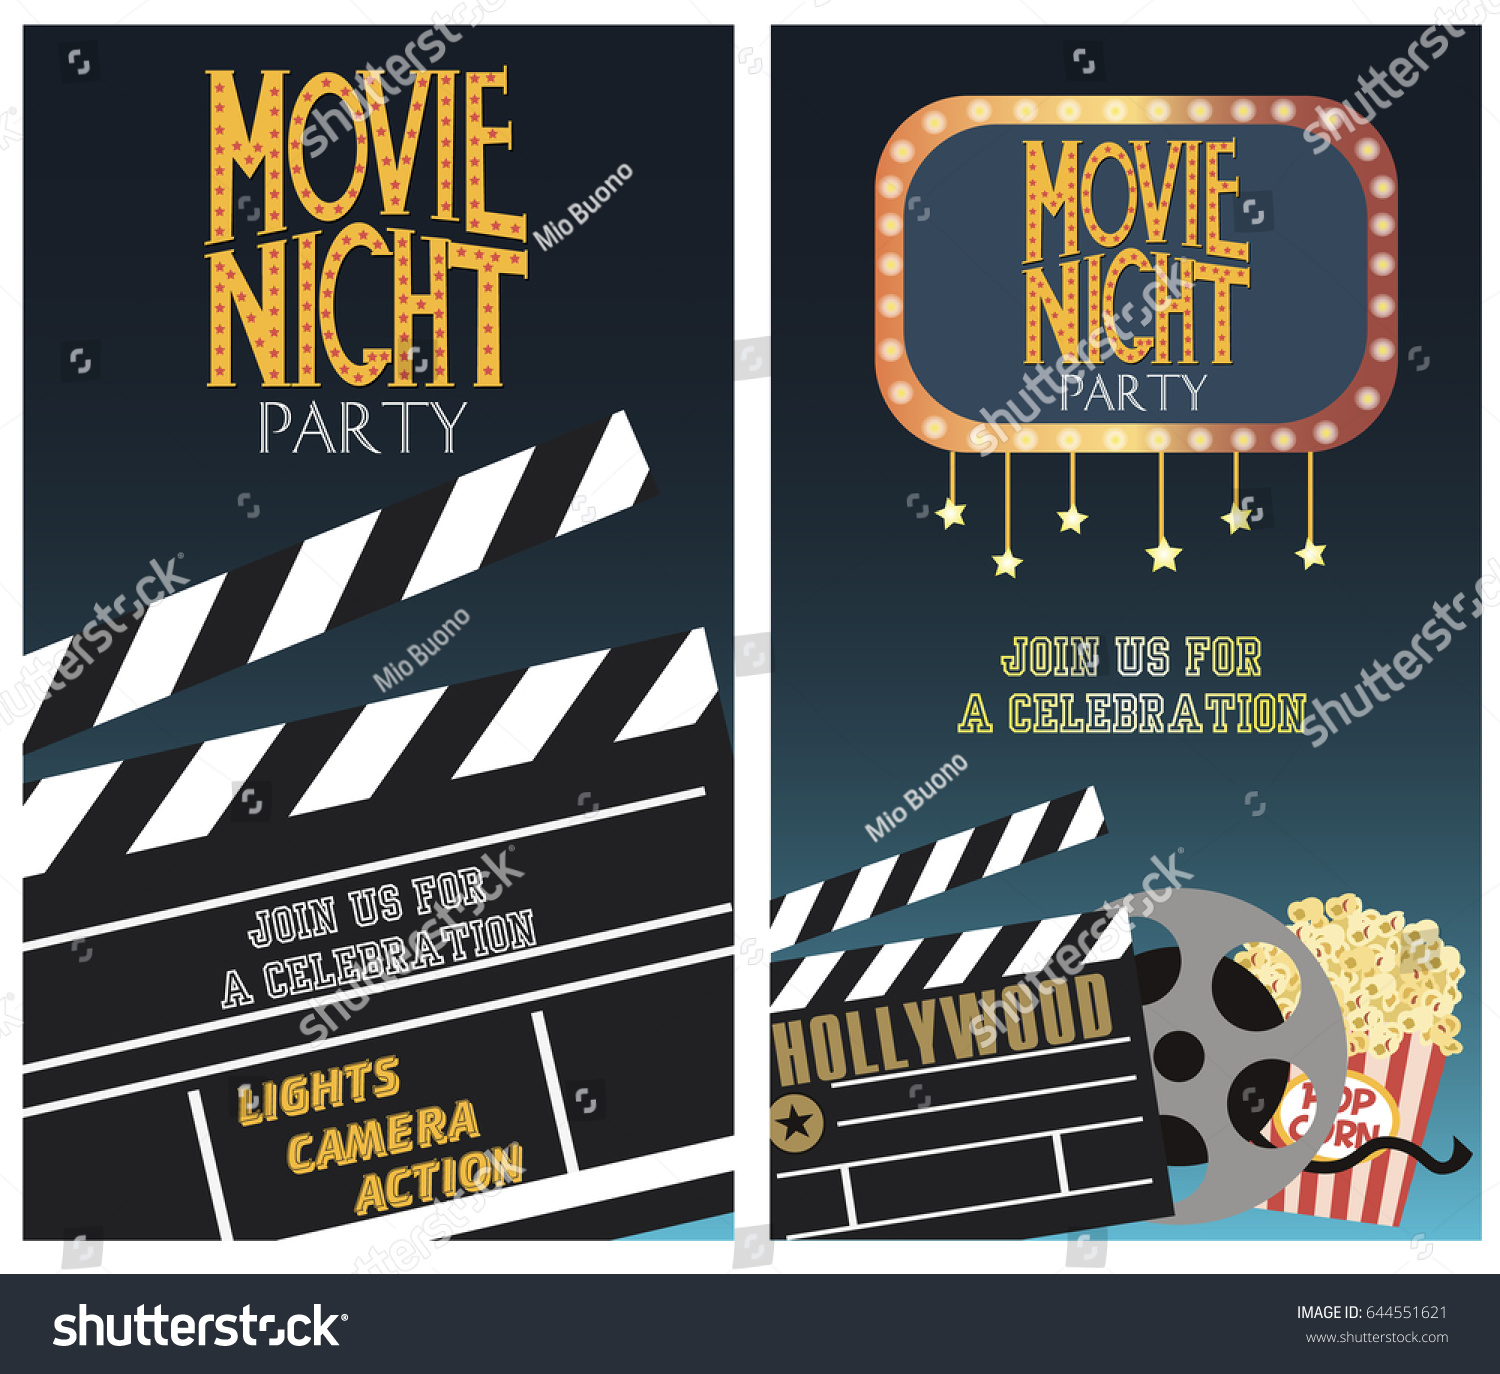 Set movie party invitation greeting cards stock vector 644551621 set of movie party invitation or greeting cards vector illustration kristyandbryce Images